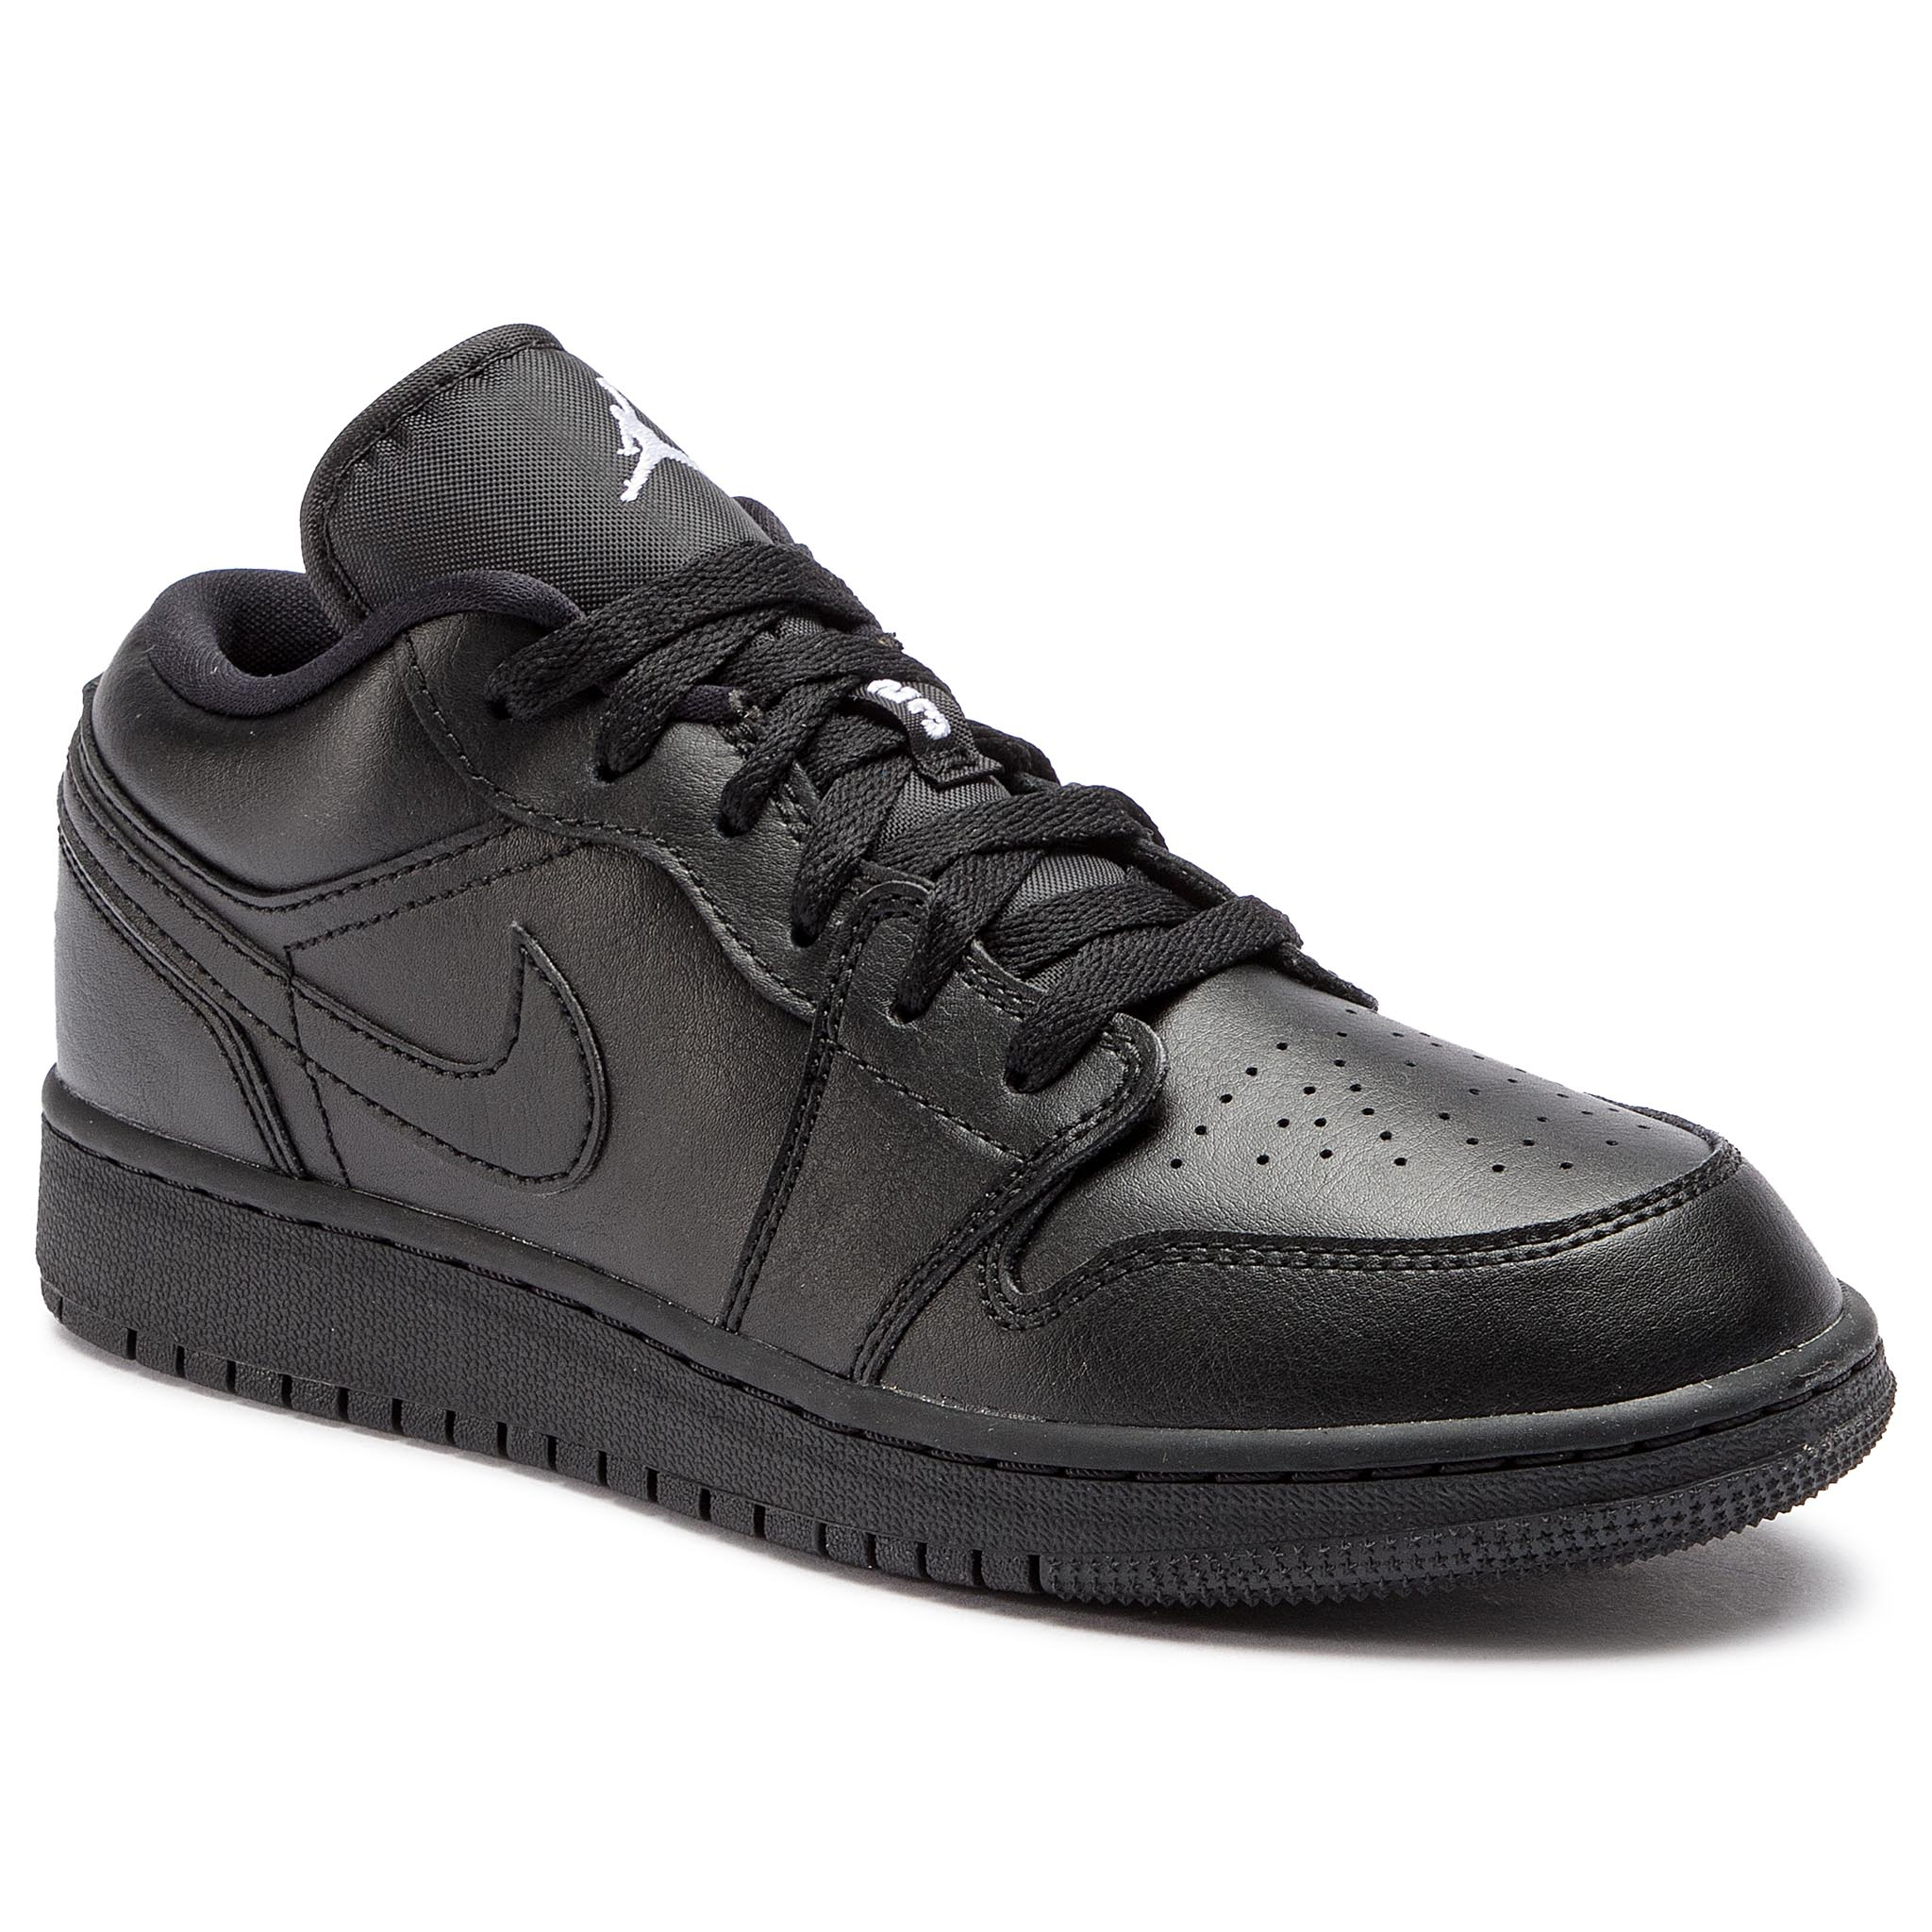 0e2fc5dcbe517 Boty NIKE - Air Jordan 1 Low (GS) 553560 006 Black/White/